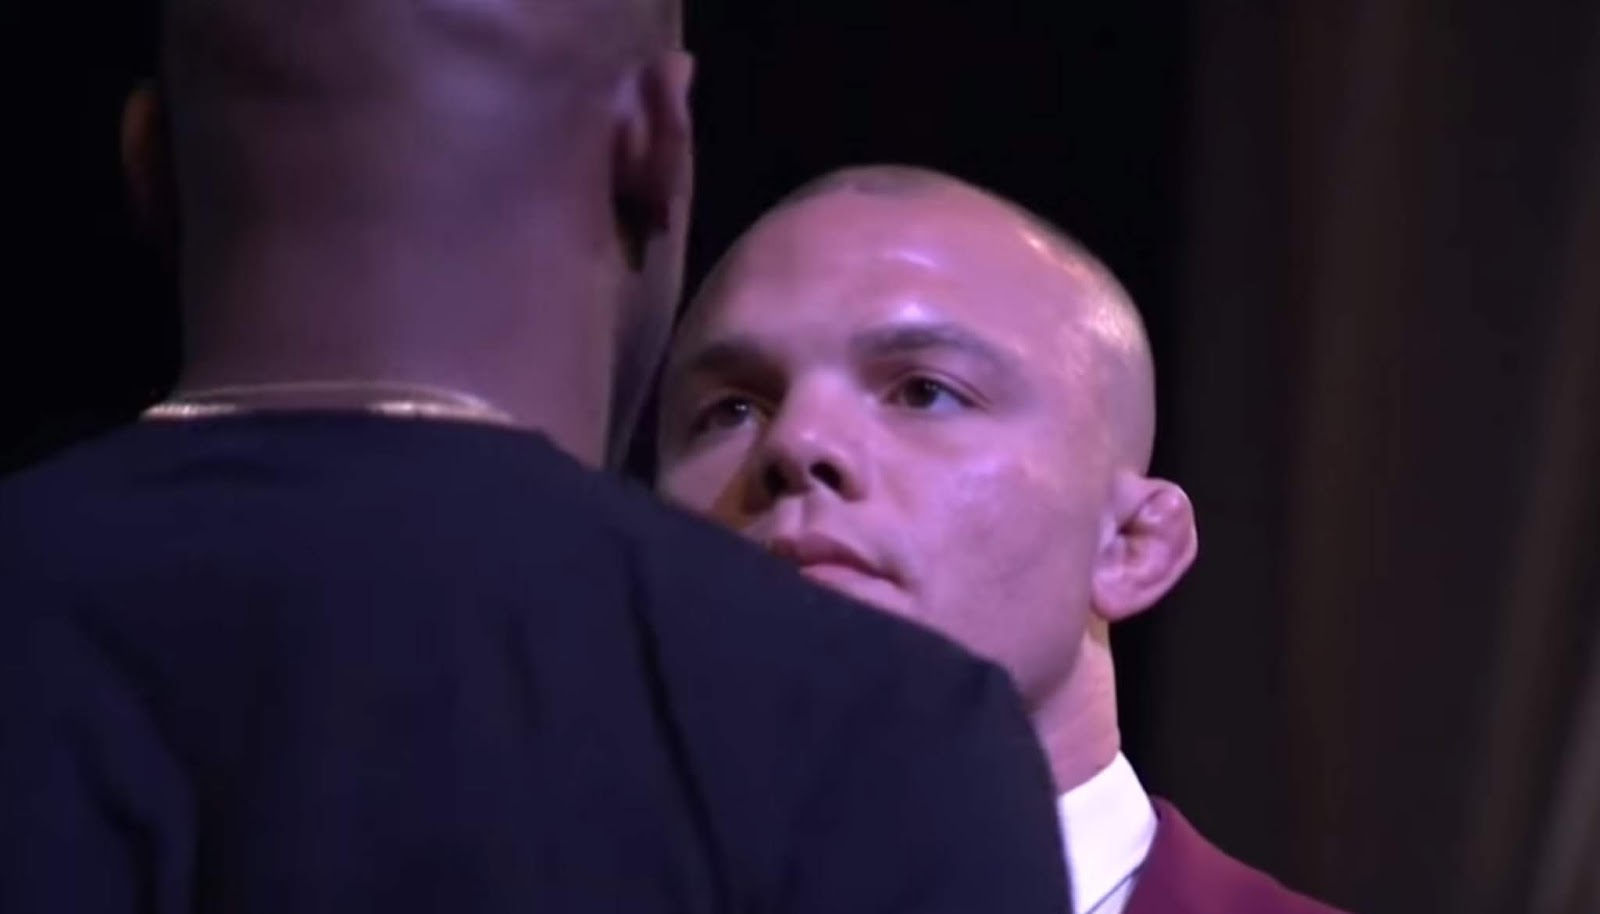 JON JONES VS. ANTHONY SMITH 3